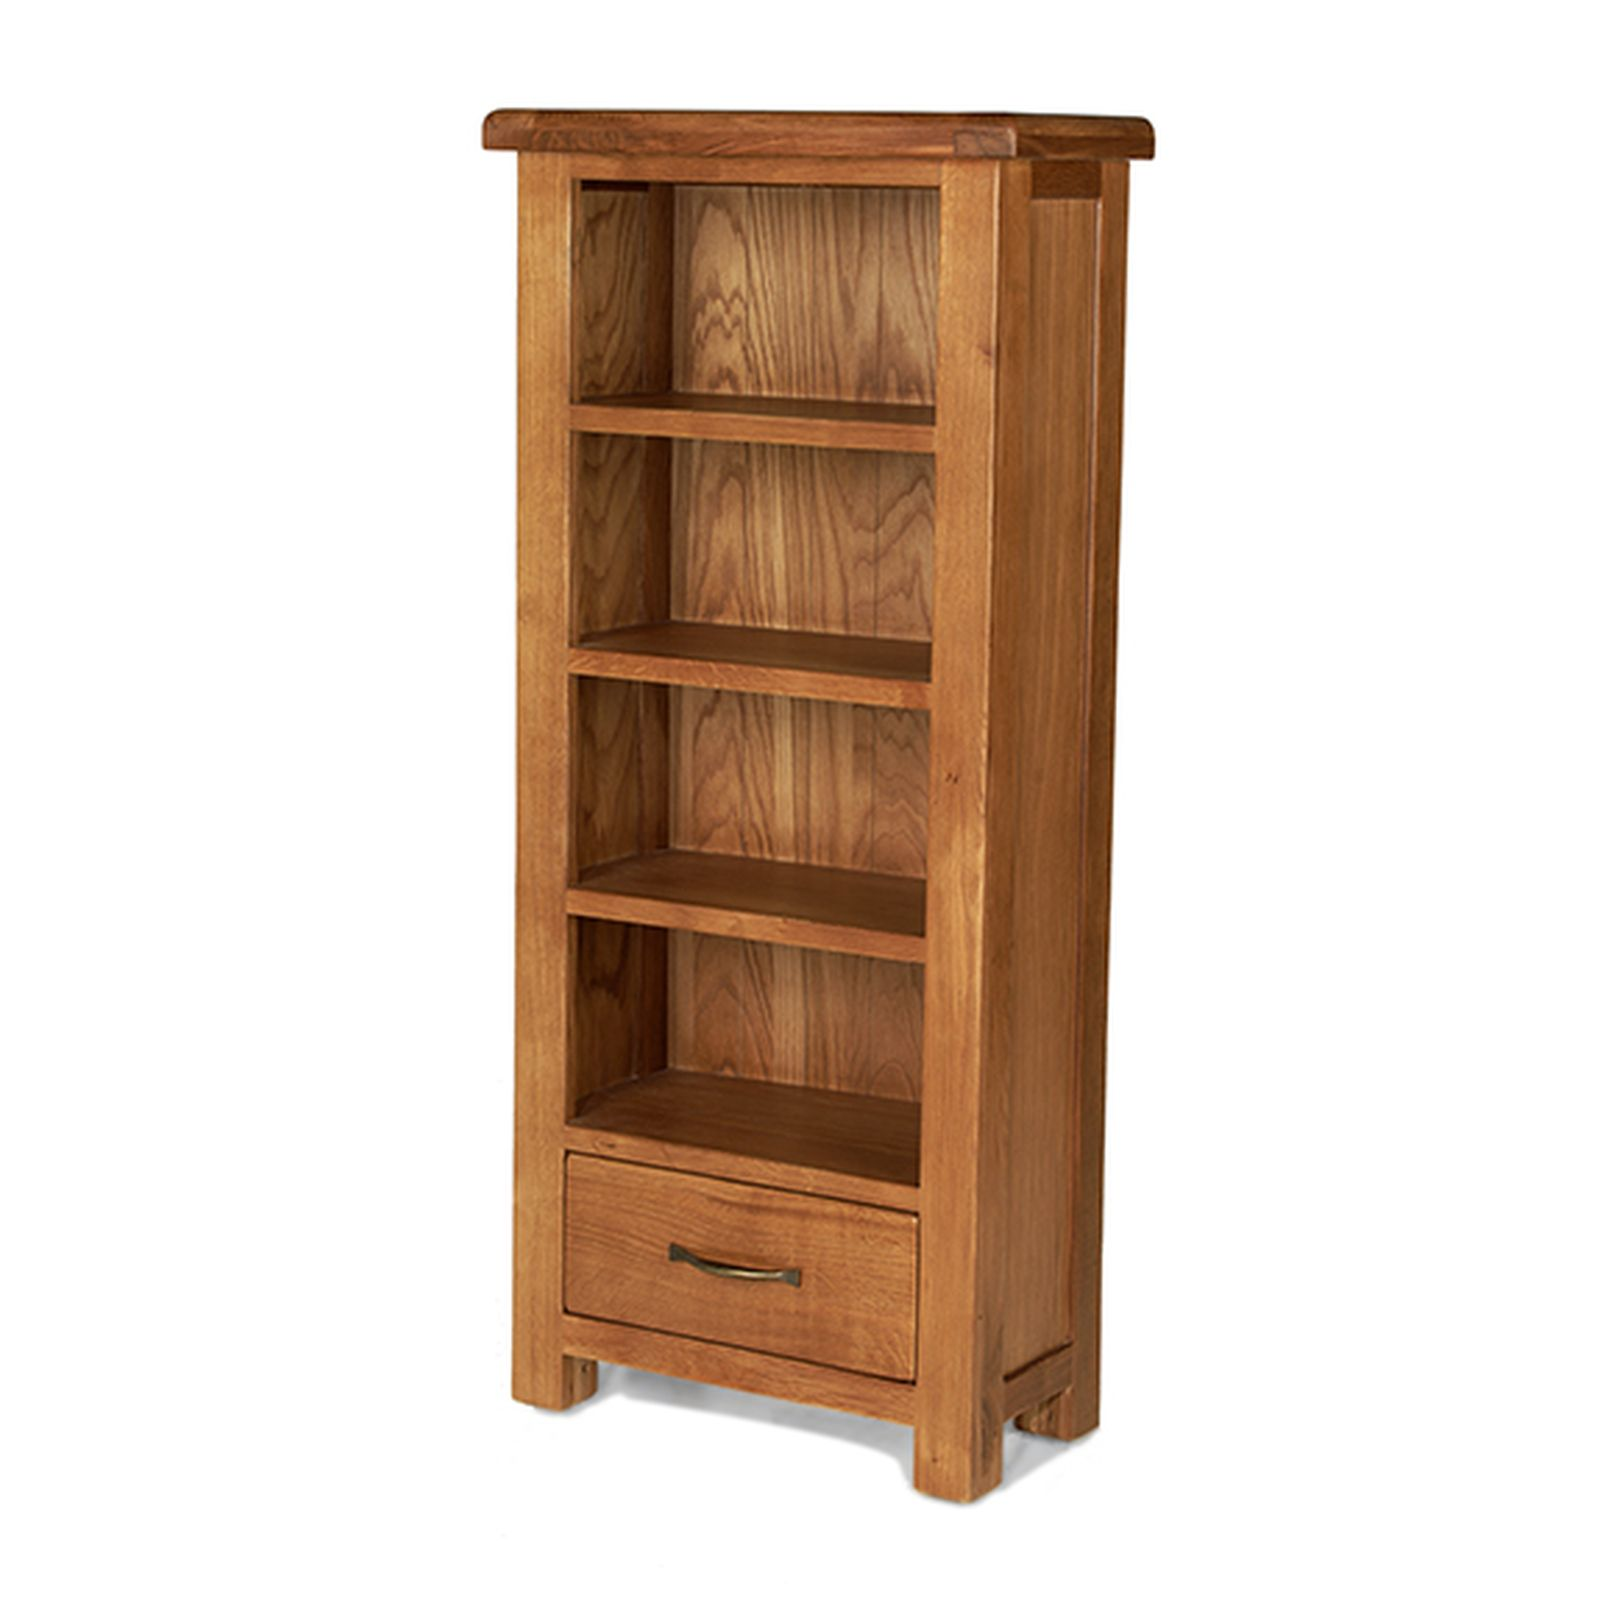 Rushden solid oak furniture cd dvd storage cabinet rack ebay for Cupboard cabinet